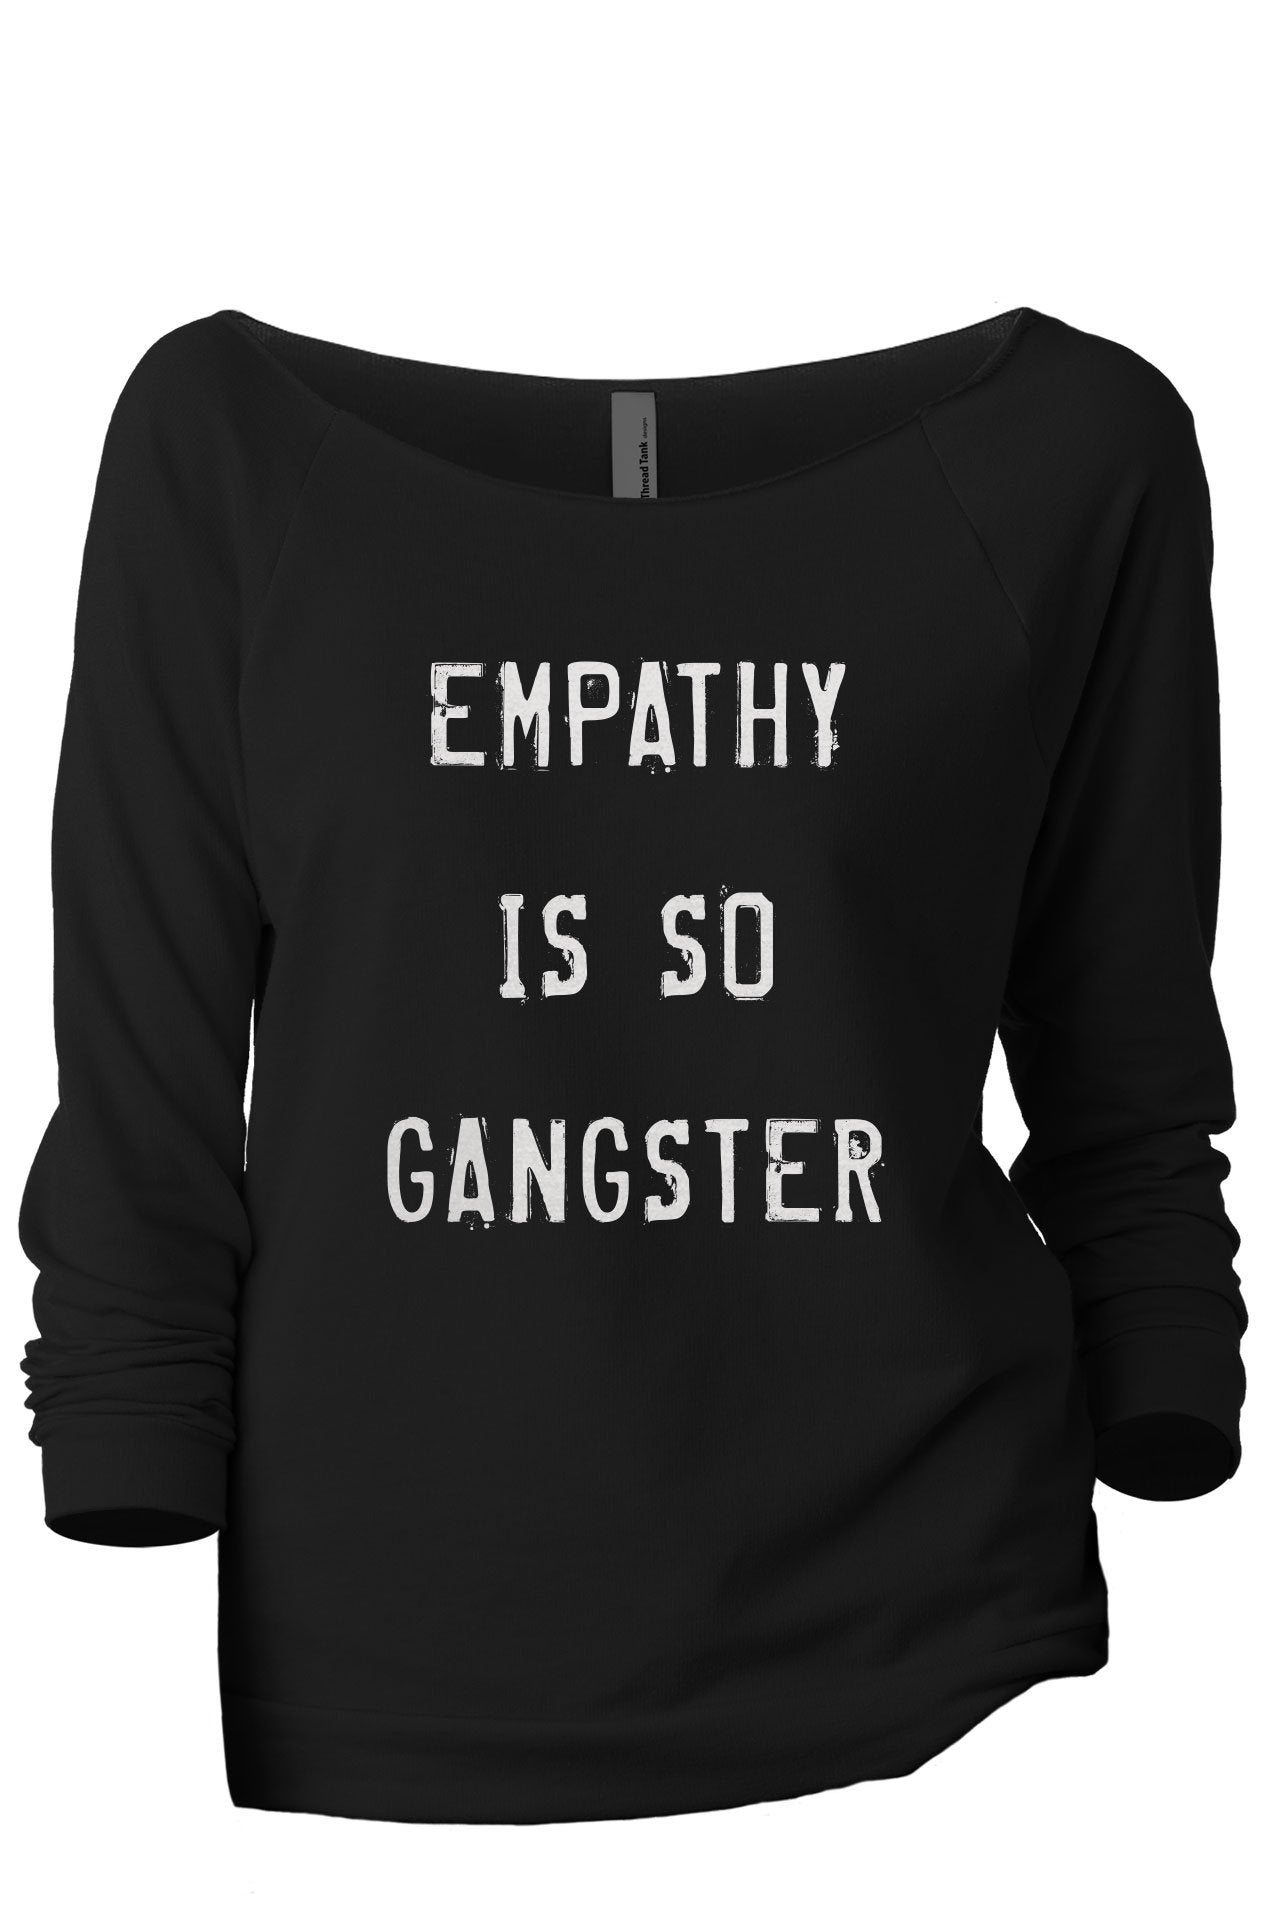 Empathy Is So Gangster Women's Graphic Printed Lightweight Slouchy 3/4 Sleeves Sweatshirt Sport Black